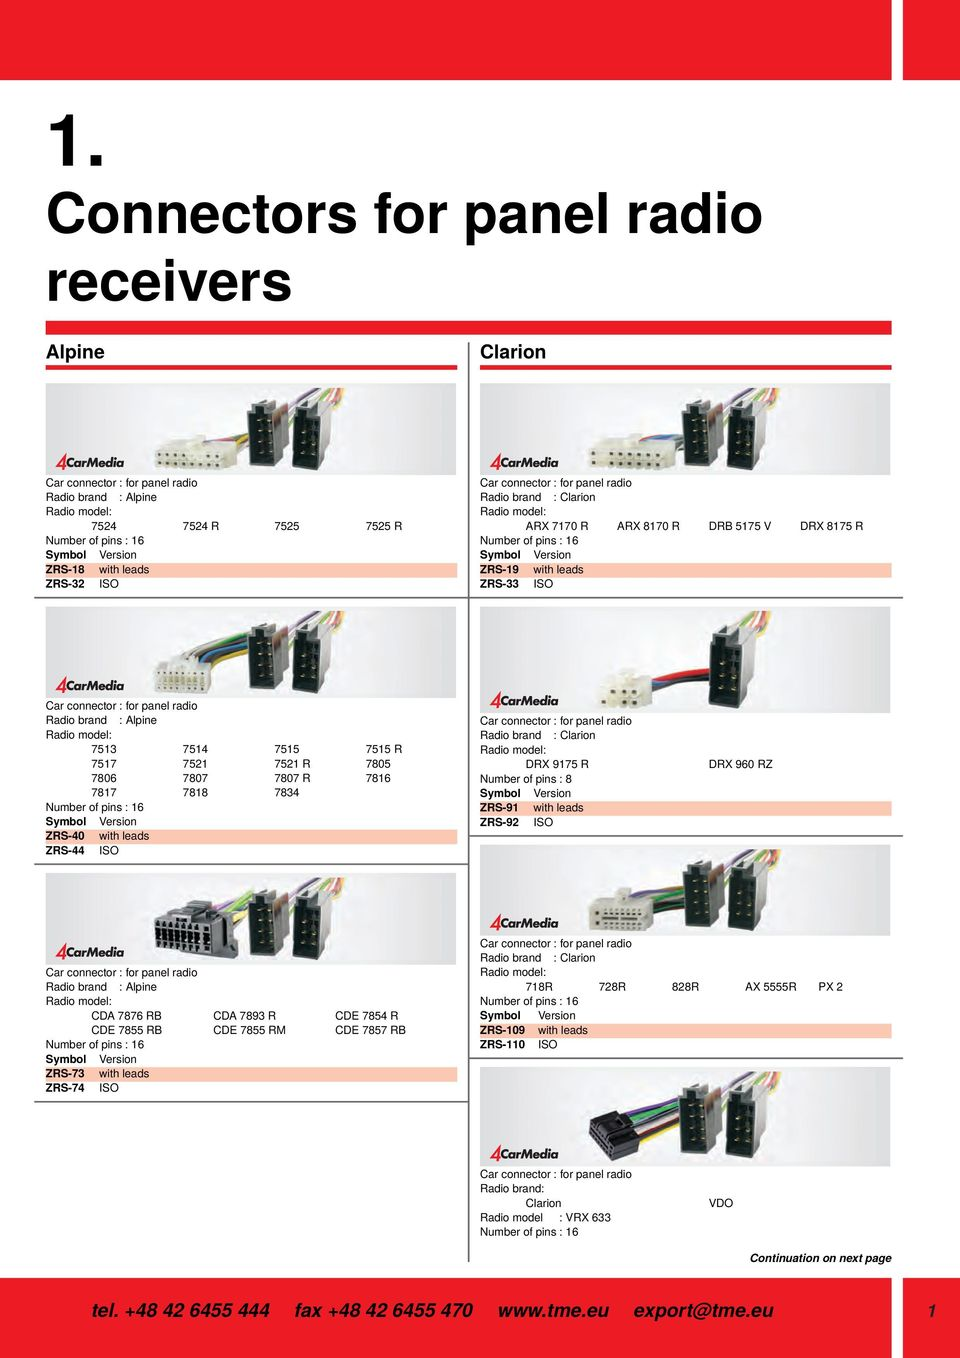 Car Audio Cables For Parrot Hands Free Kits Connectors Factory Mp 202 Kenwood Model Kdc Wiring Diagram Panel Radio Brand Alpine 7513 7514 7515 R